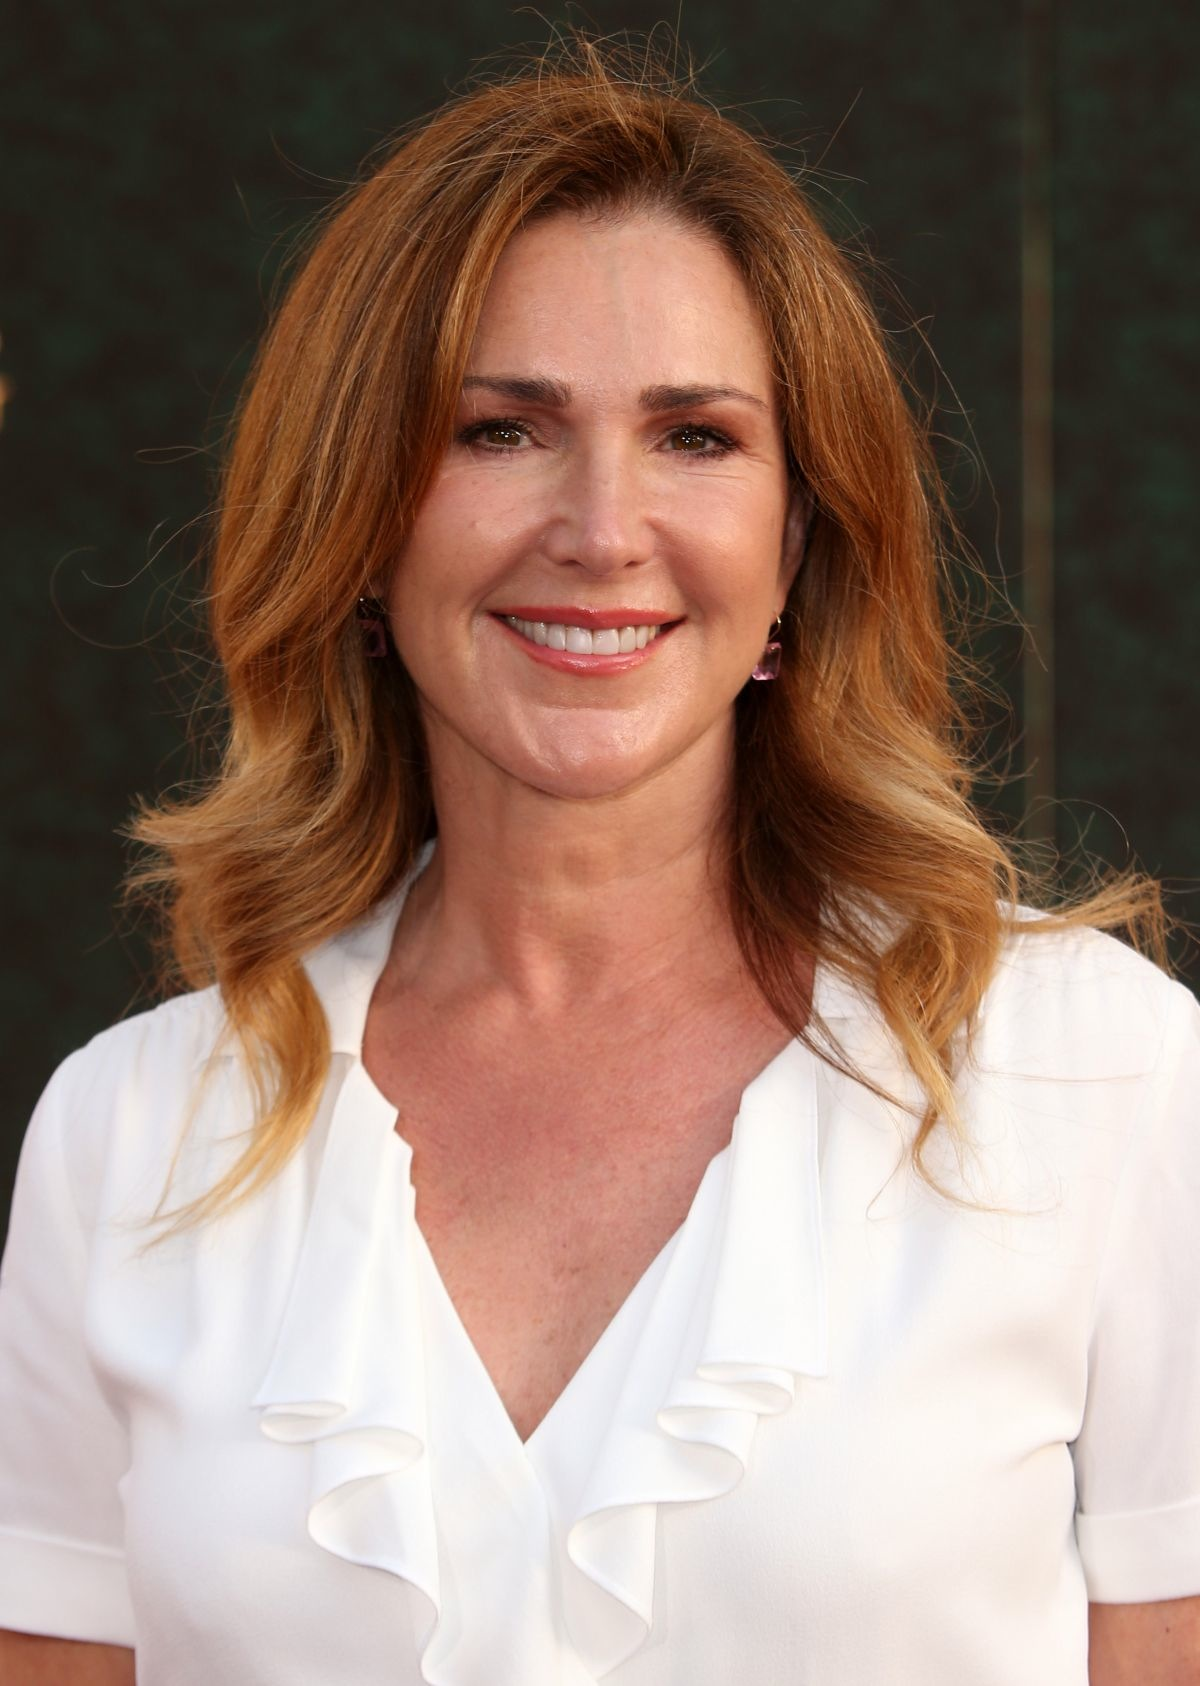 Peri Gilpin nude photos 2019